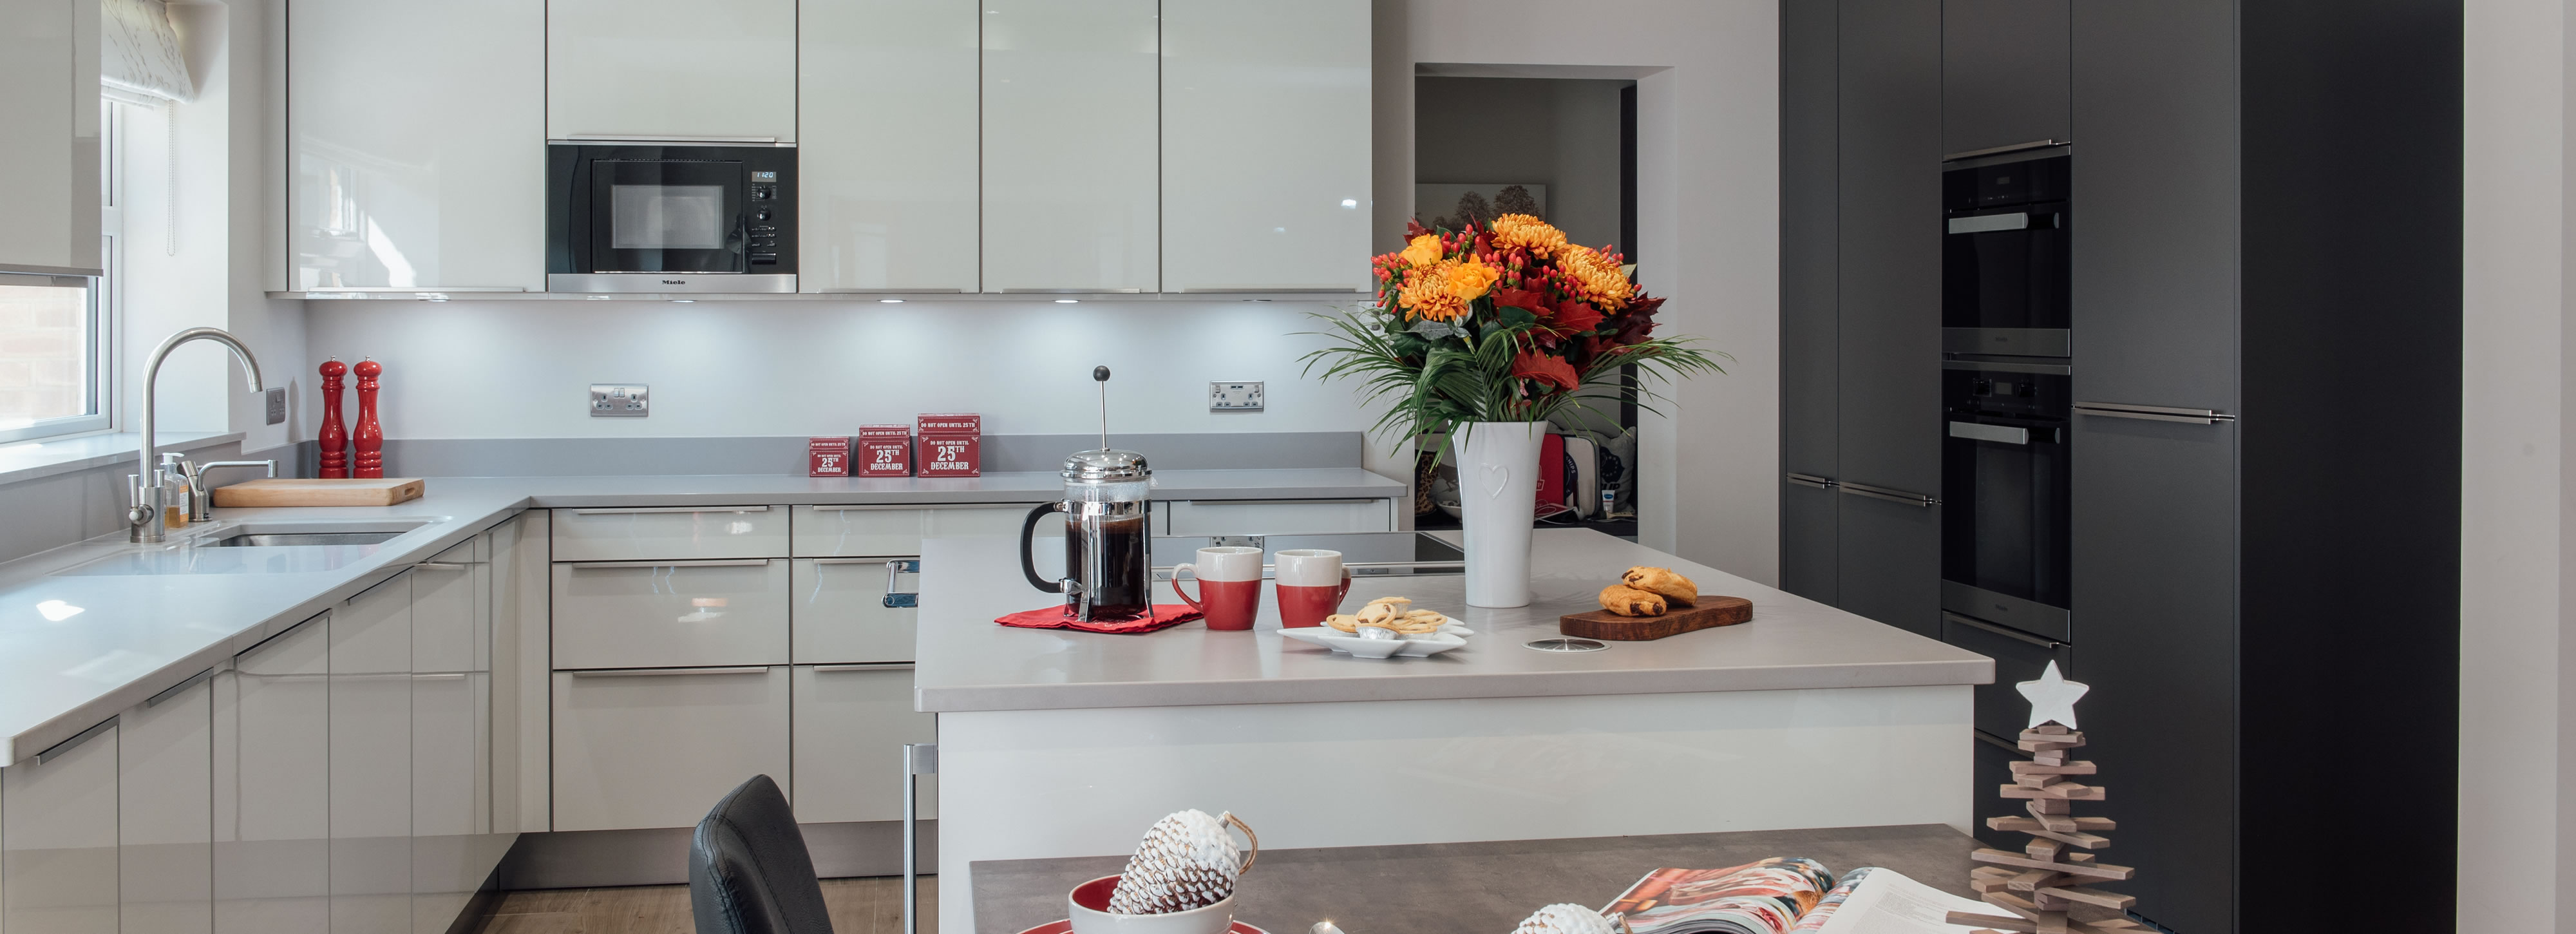 contemporary kitchen design and installation surrey bespoke luxury kitchens for london somerset and the